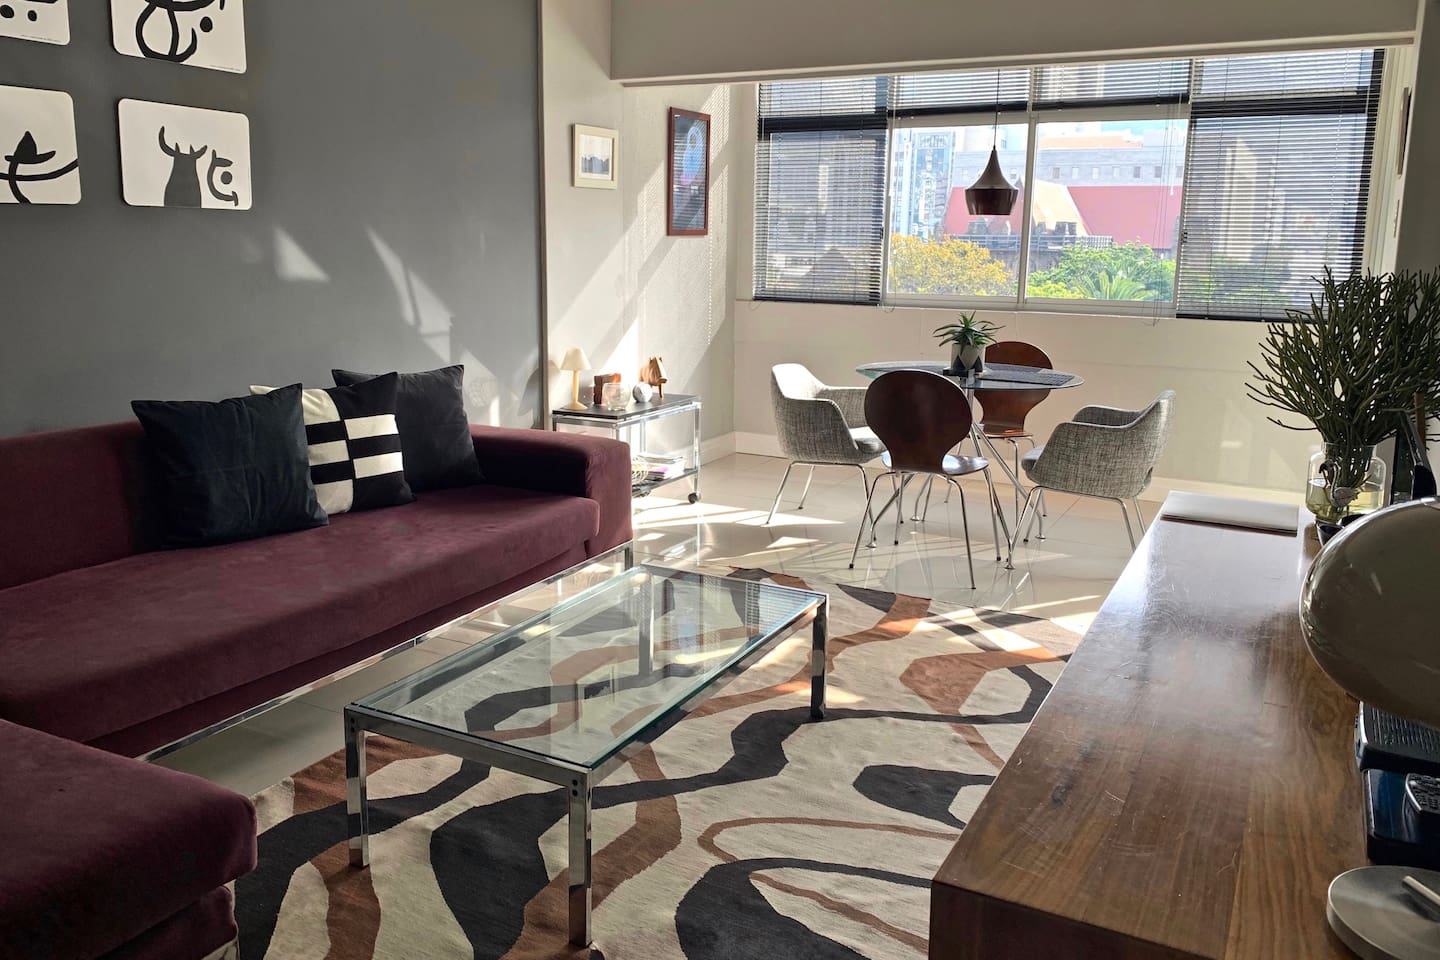 The open plan living room, with views over Cape Town Catherderal, Company's Garden and Signal Hill.